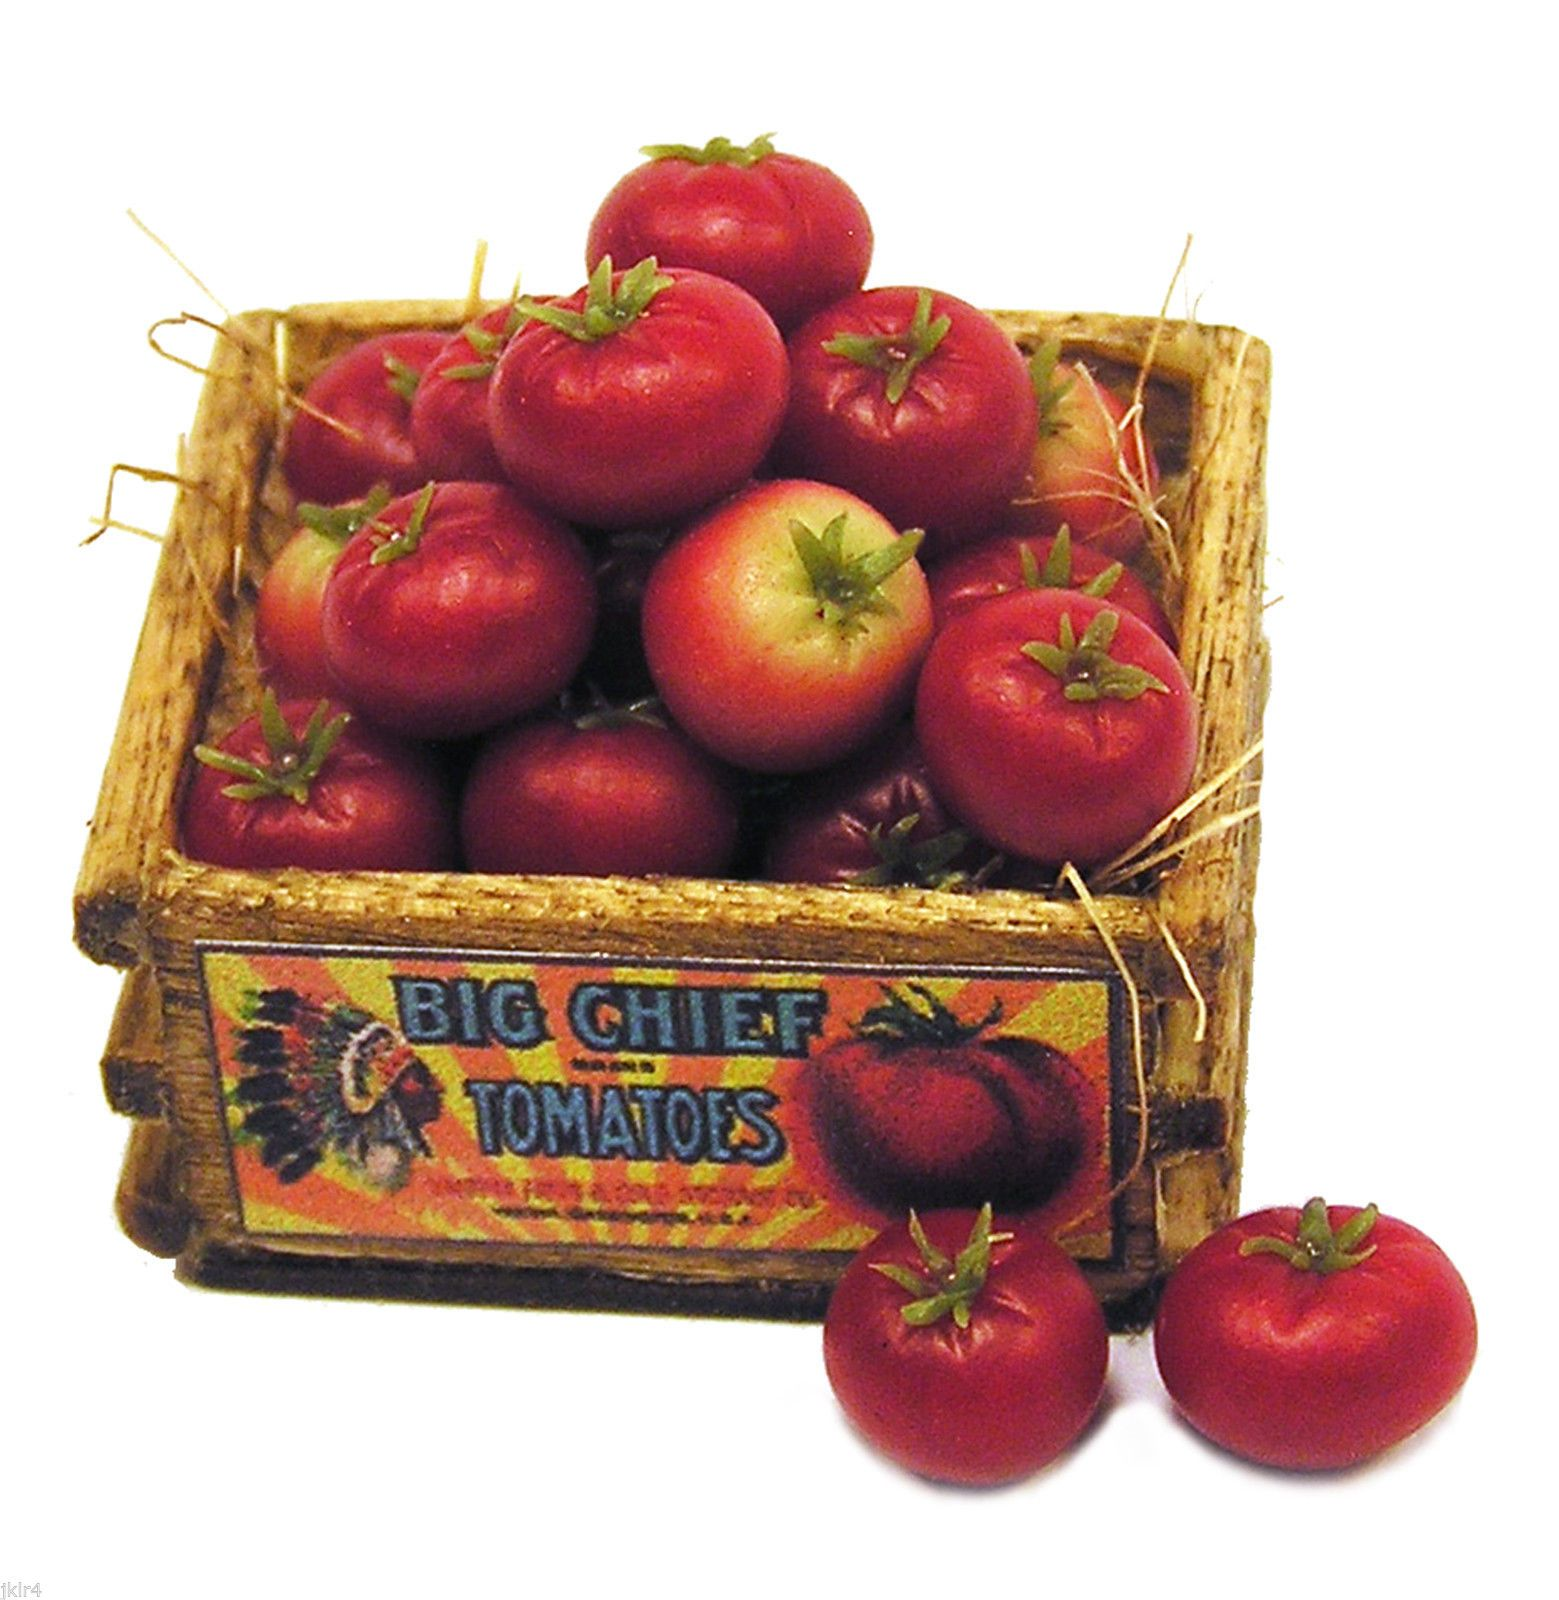 Dollhouse Miniature Crate of Red Tomatoes Handmade 1 12 Scale | eBay